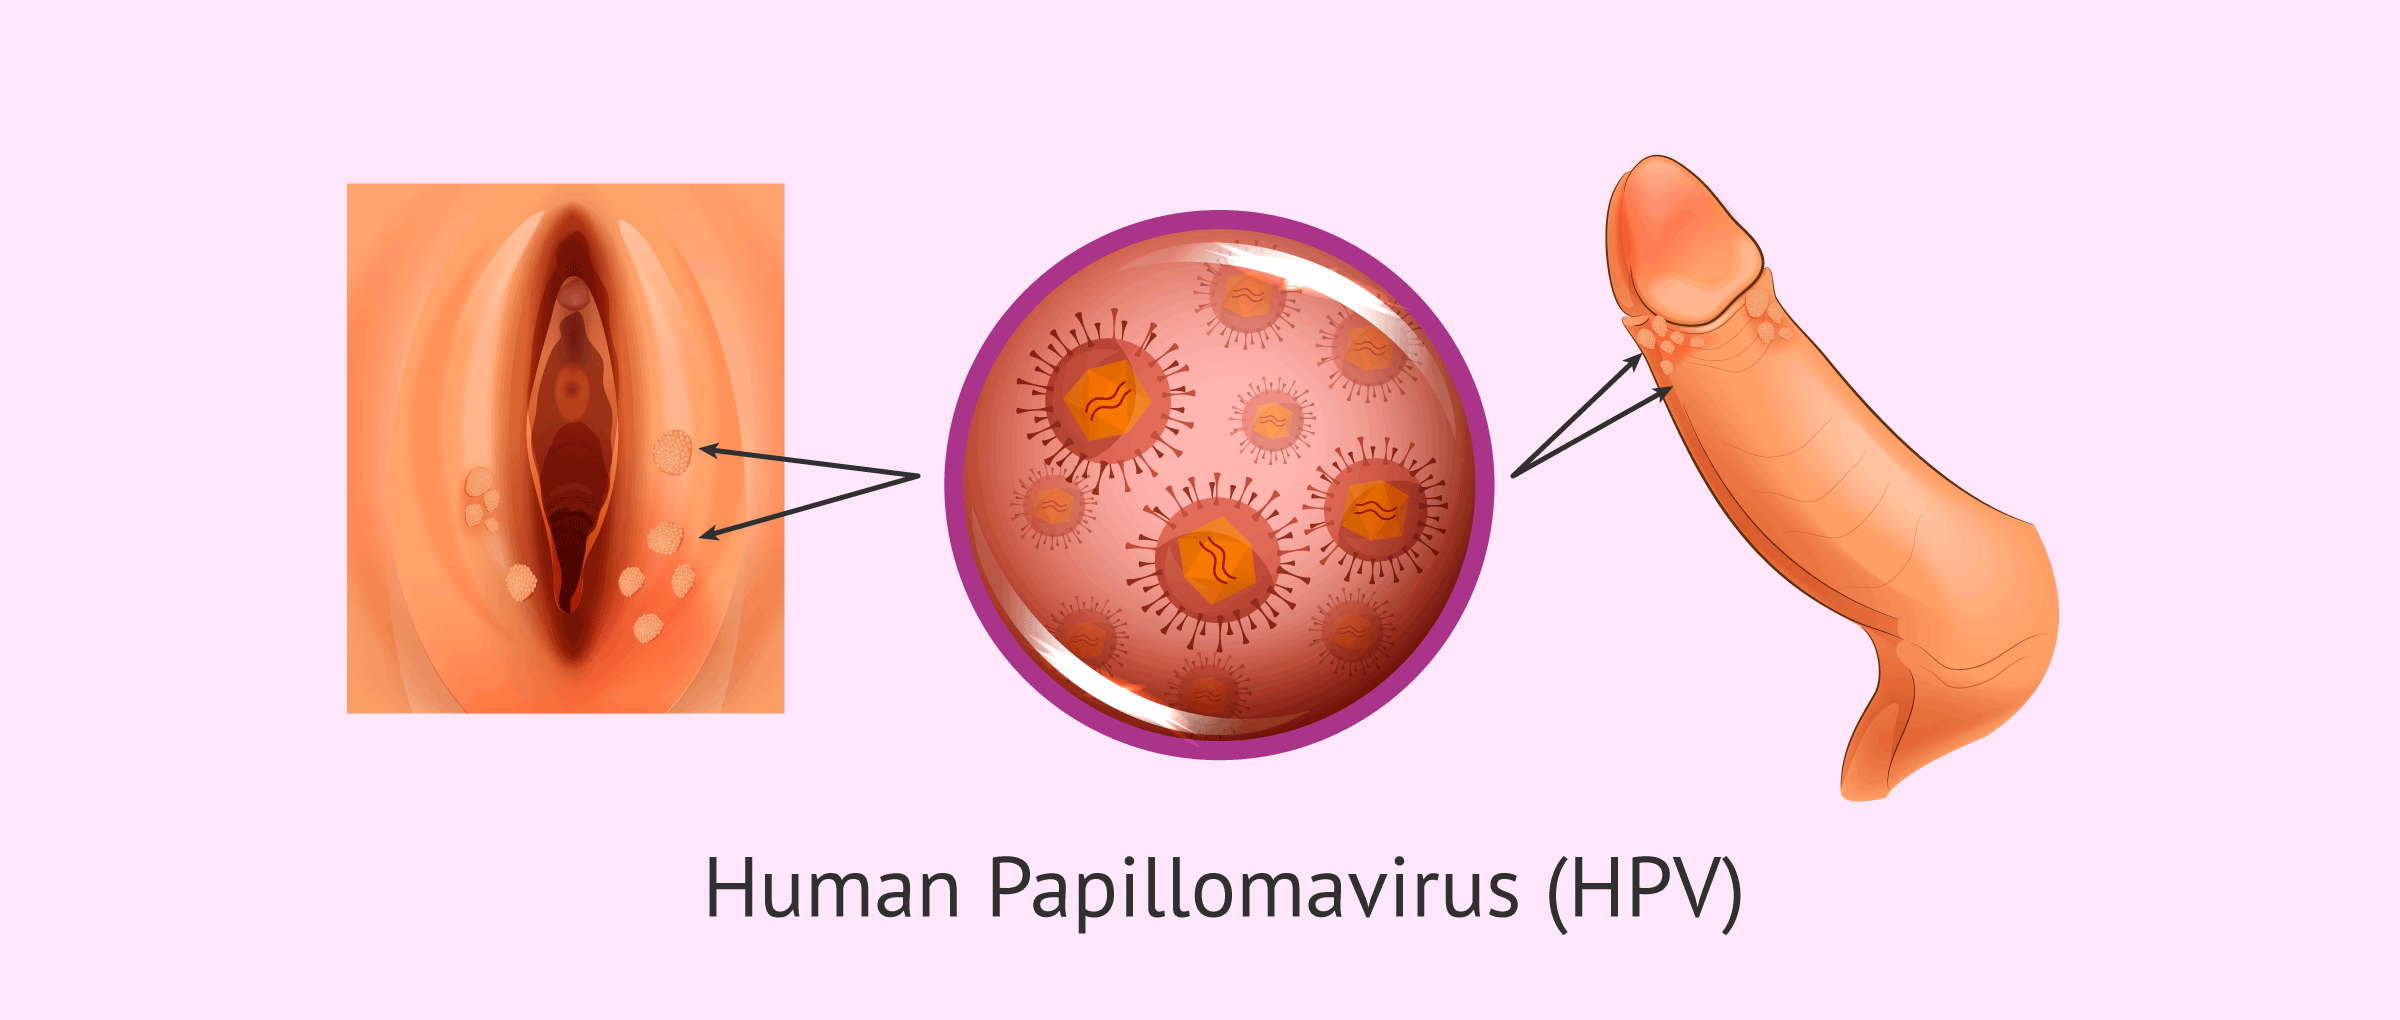 Does human papilloma virus make you tired